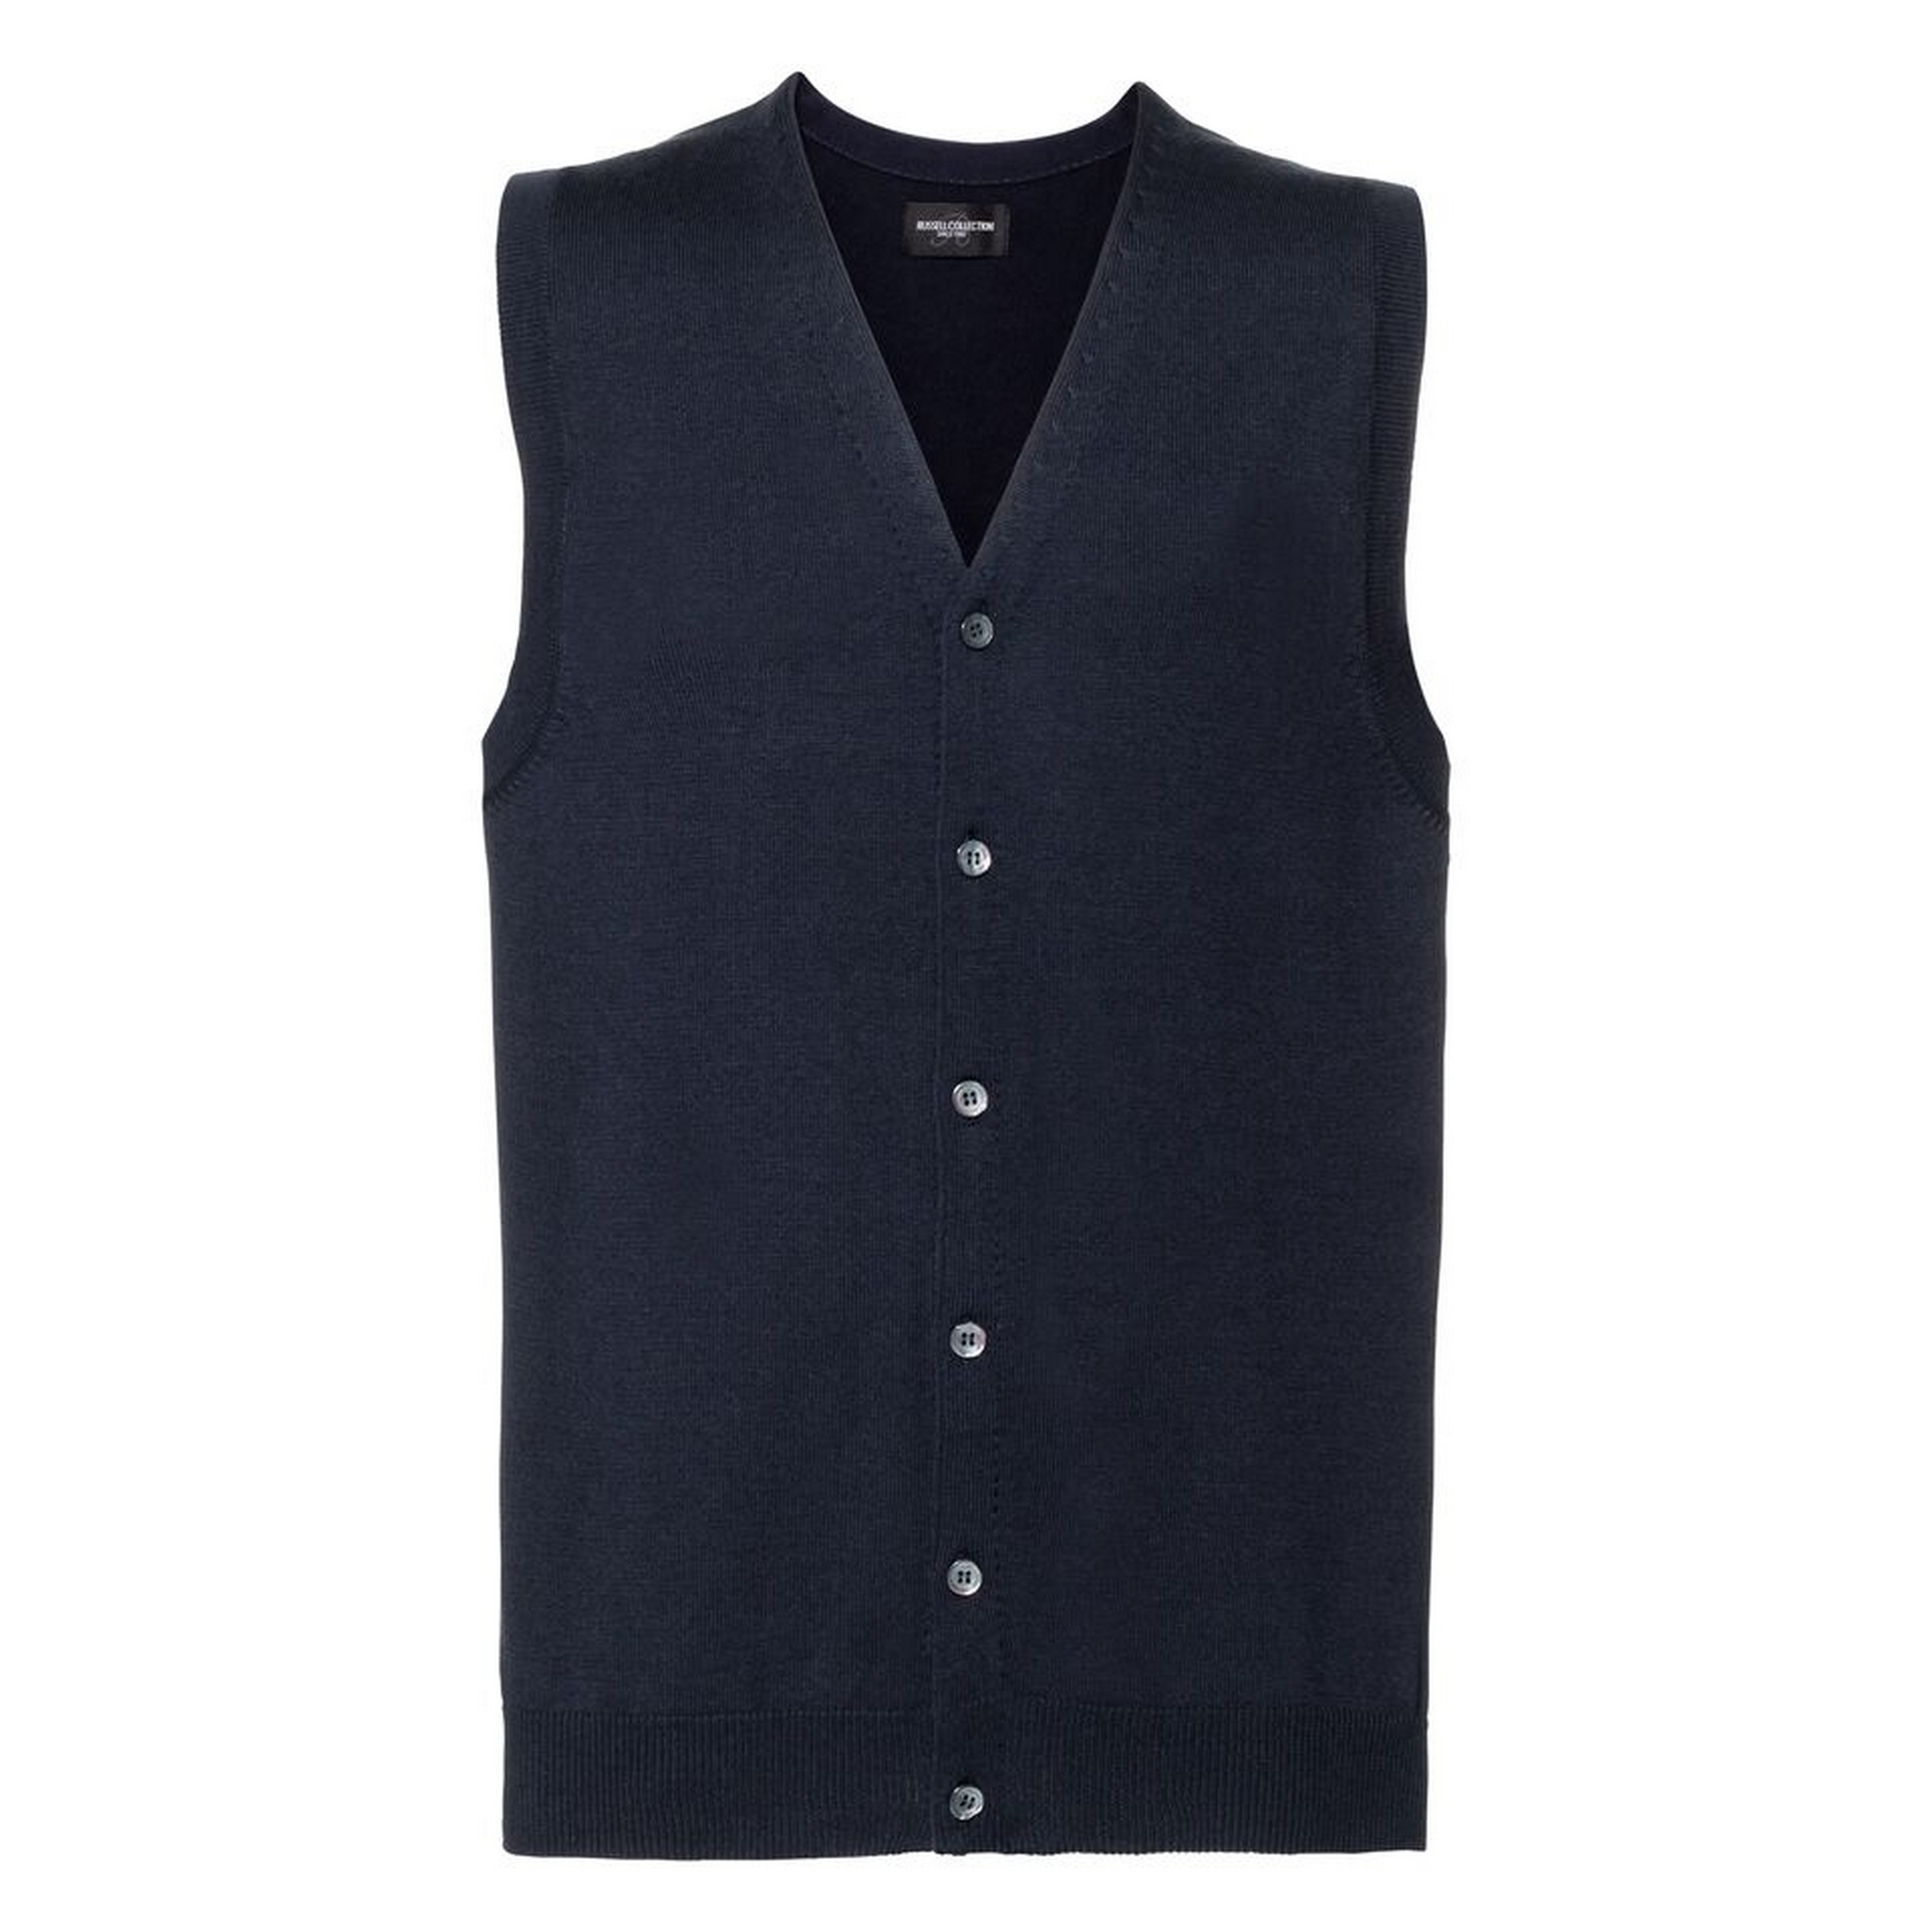 Russell Collection Mens V-neck Sleeveless Knitted Cardigan (2XS) (French Navy)